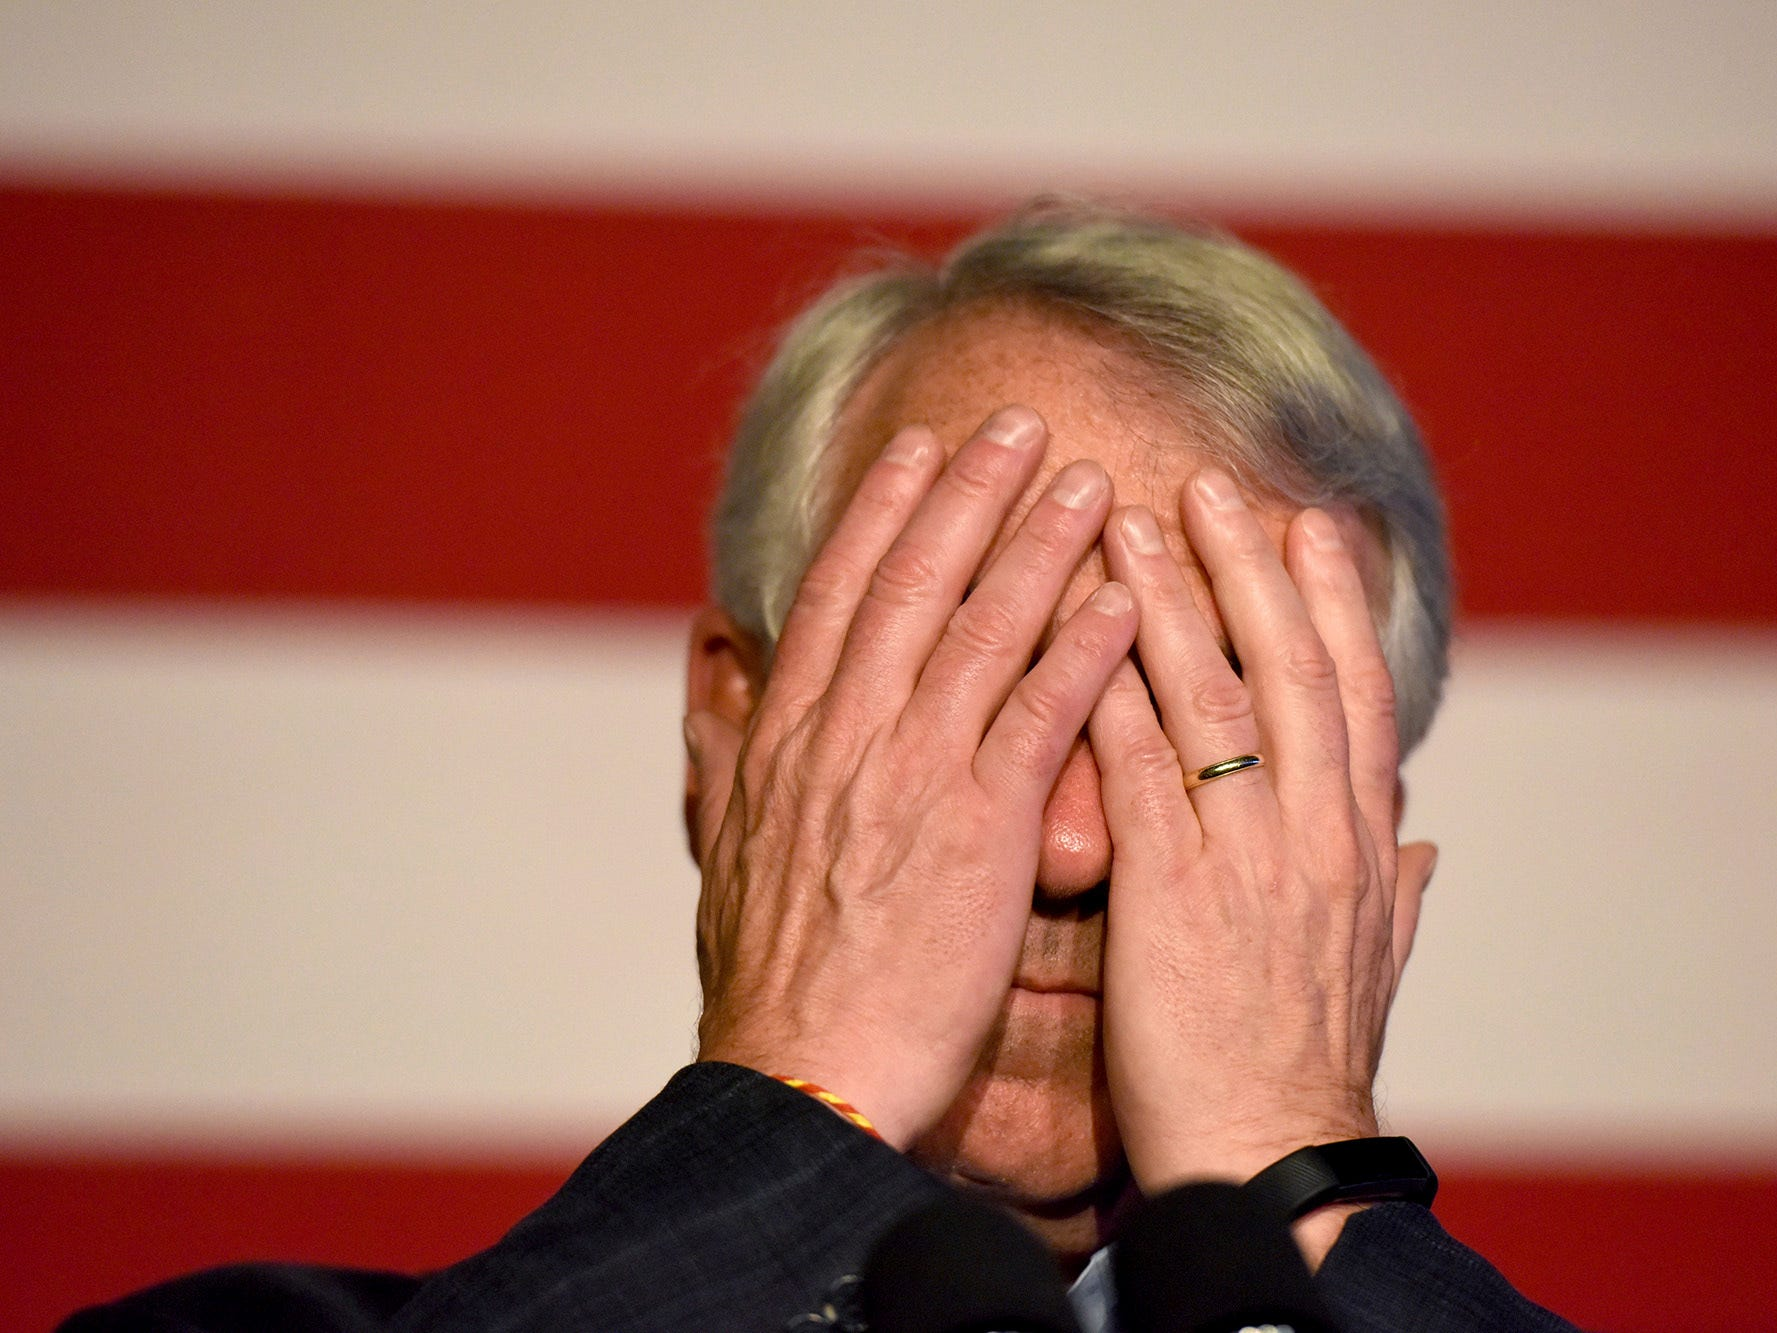 Bob Hugin, the Republican candidate in the New Jersey Senate race, covers his eyes while giving a concession speech to his supporters at the Stage House Tavern in Mountainside, N.J., Tuesday, Nov. 6, 2018.